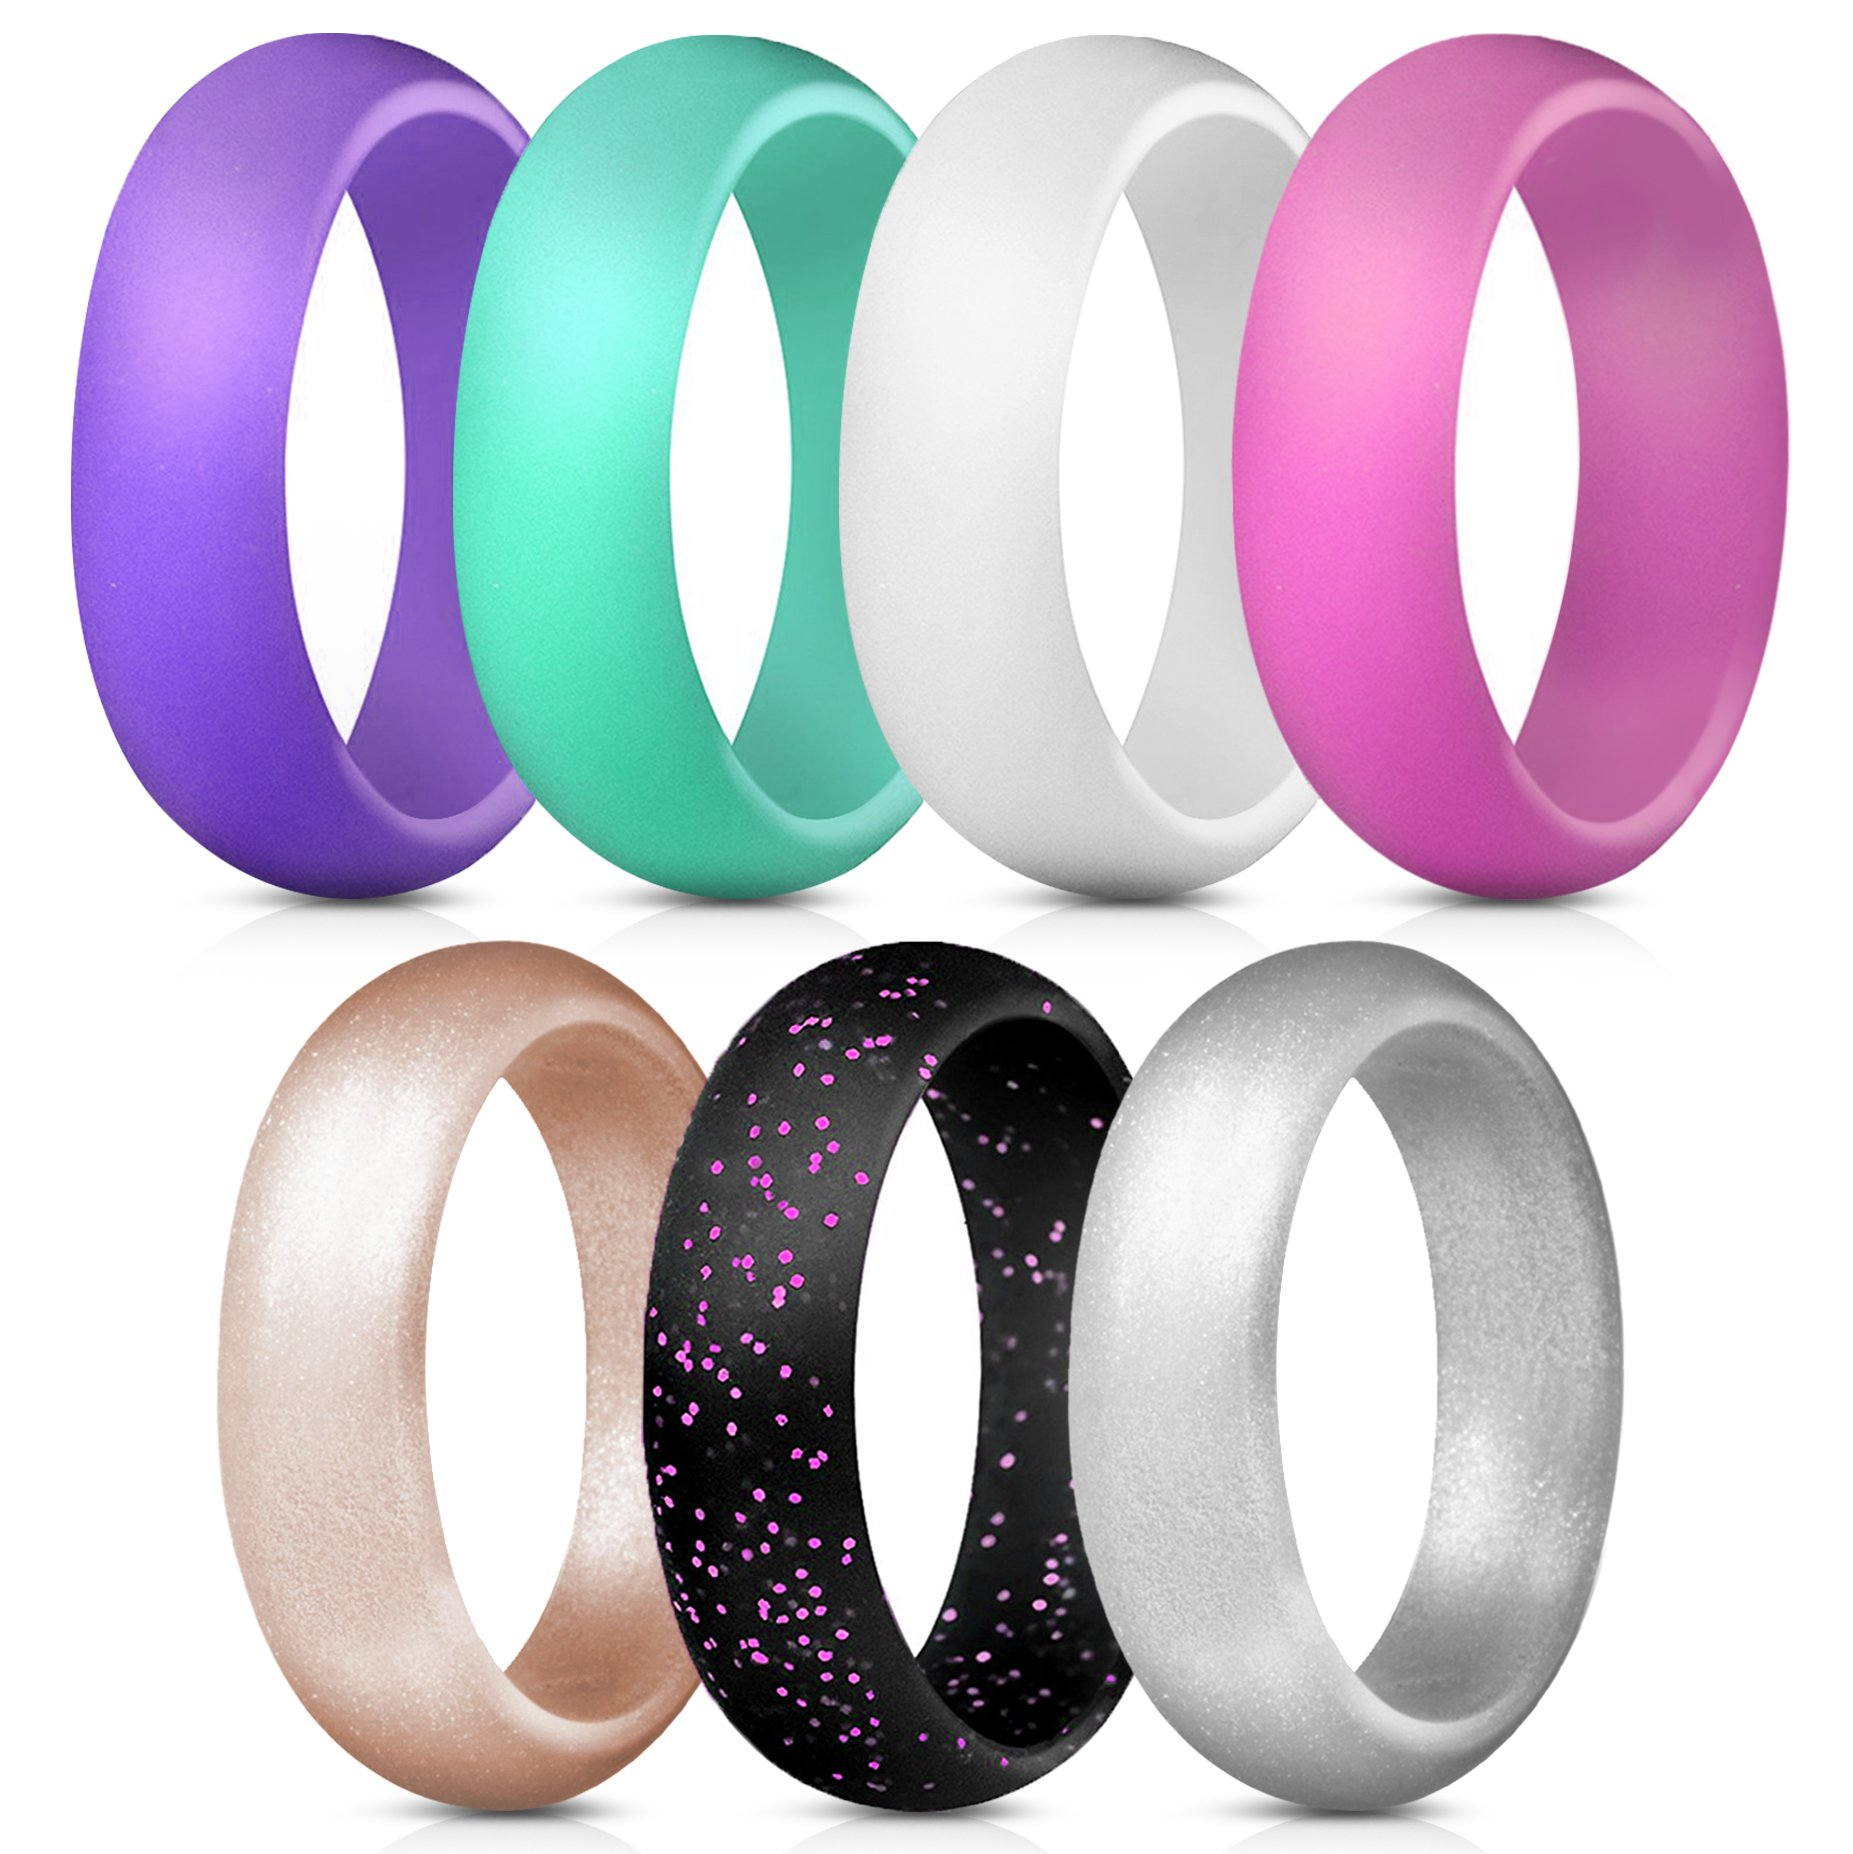 ThunderFit Silicone Rings, 7 Pack Wedding Bands for Women - 5.5 mm wide